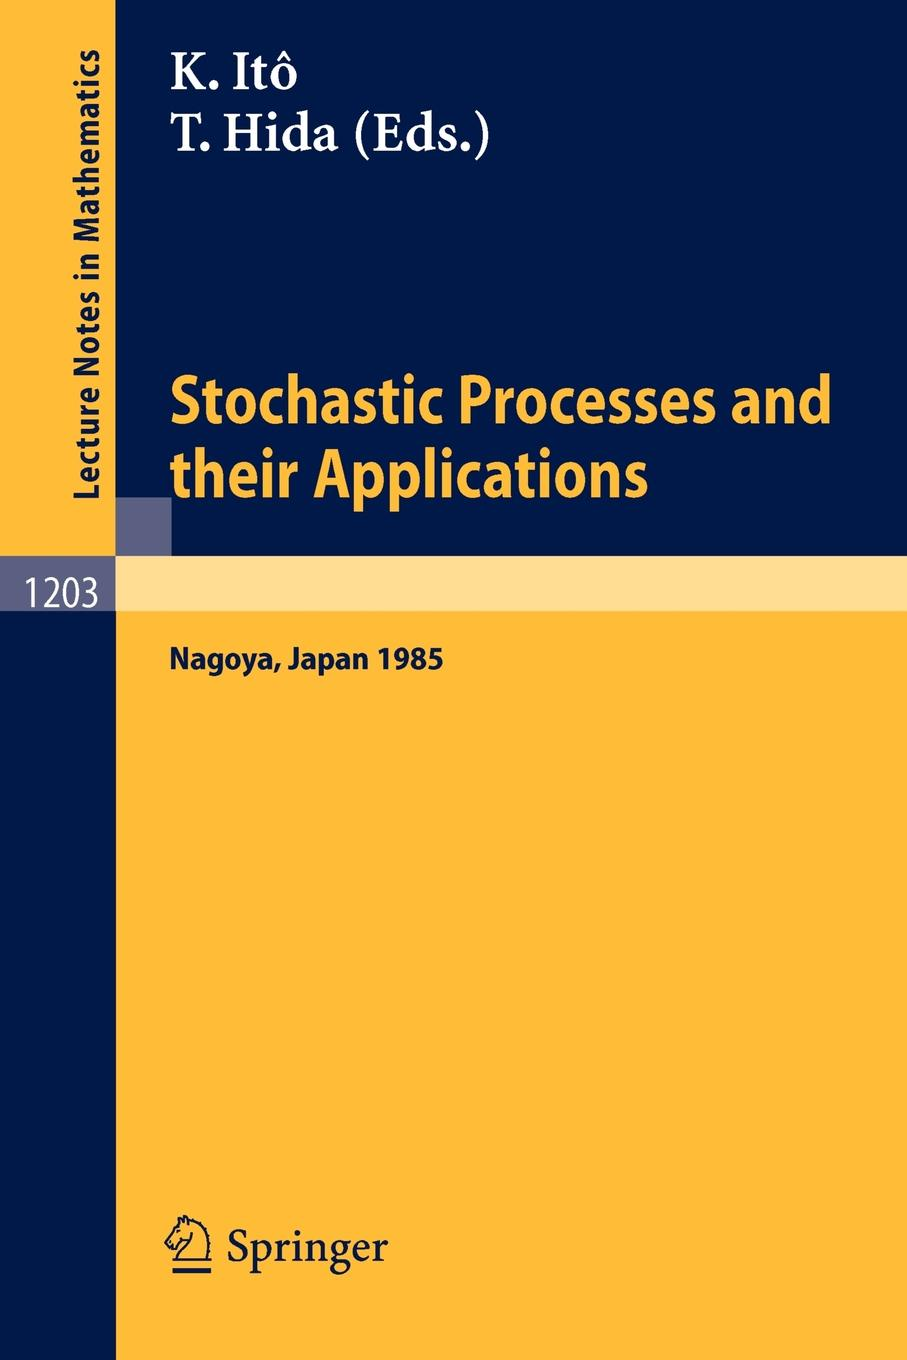 Stochastic Processes and Their Applications. Proceedings of the International Conference held in Nagoya, July 2-6, 1985